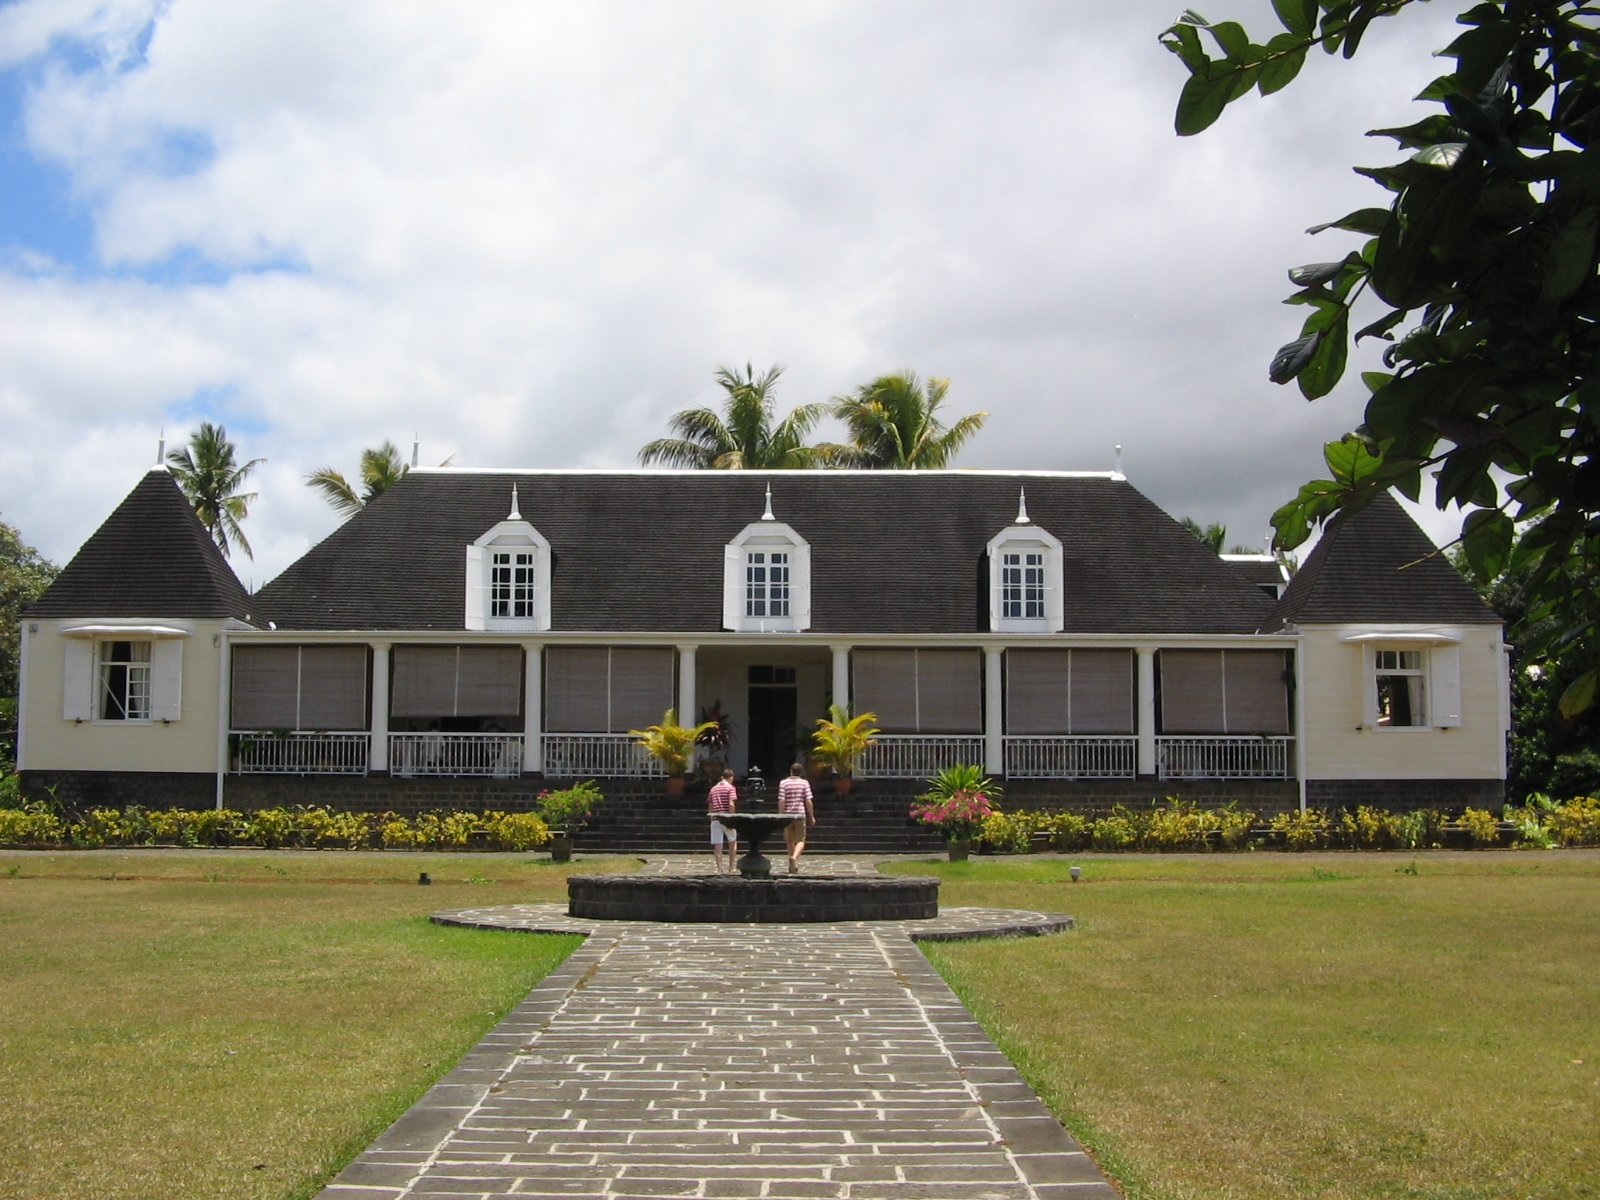 House of Saint-Aubin (Mauritius). Stage on the Route du Thé. Picture via Wikimedia Commons, CC by SA.